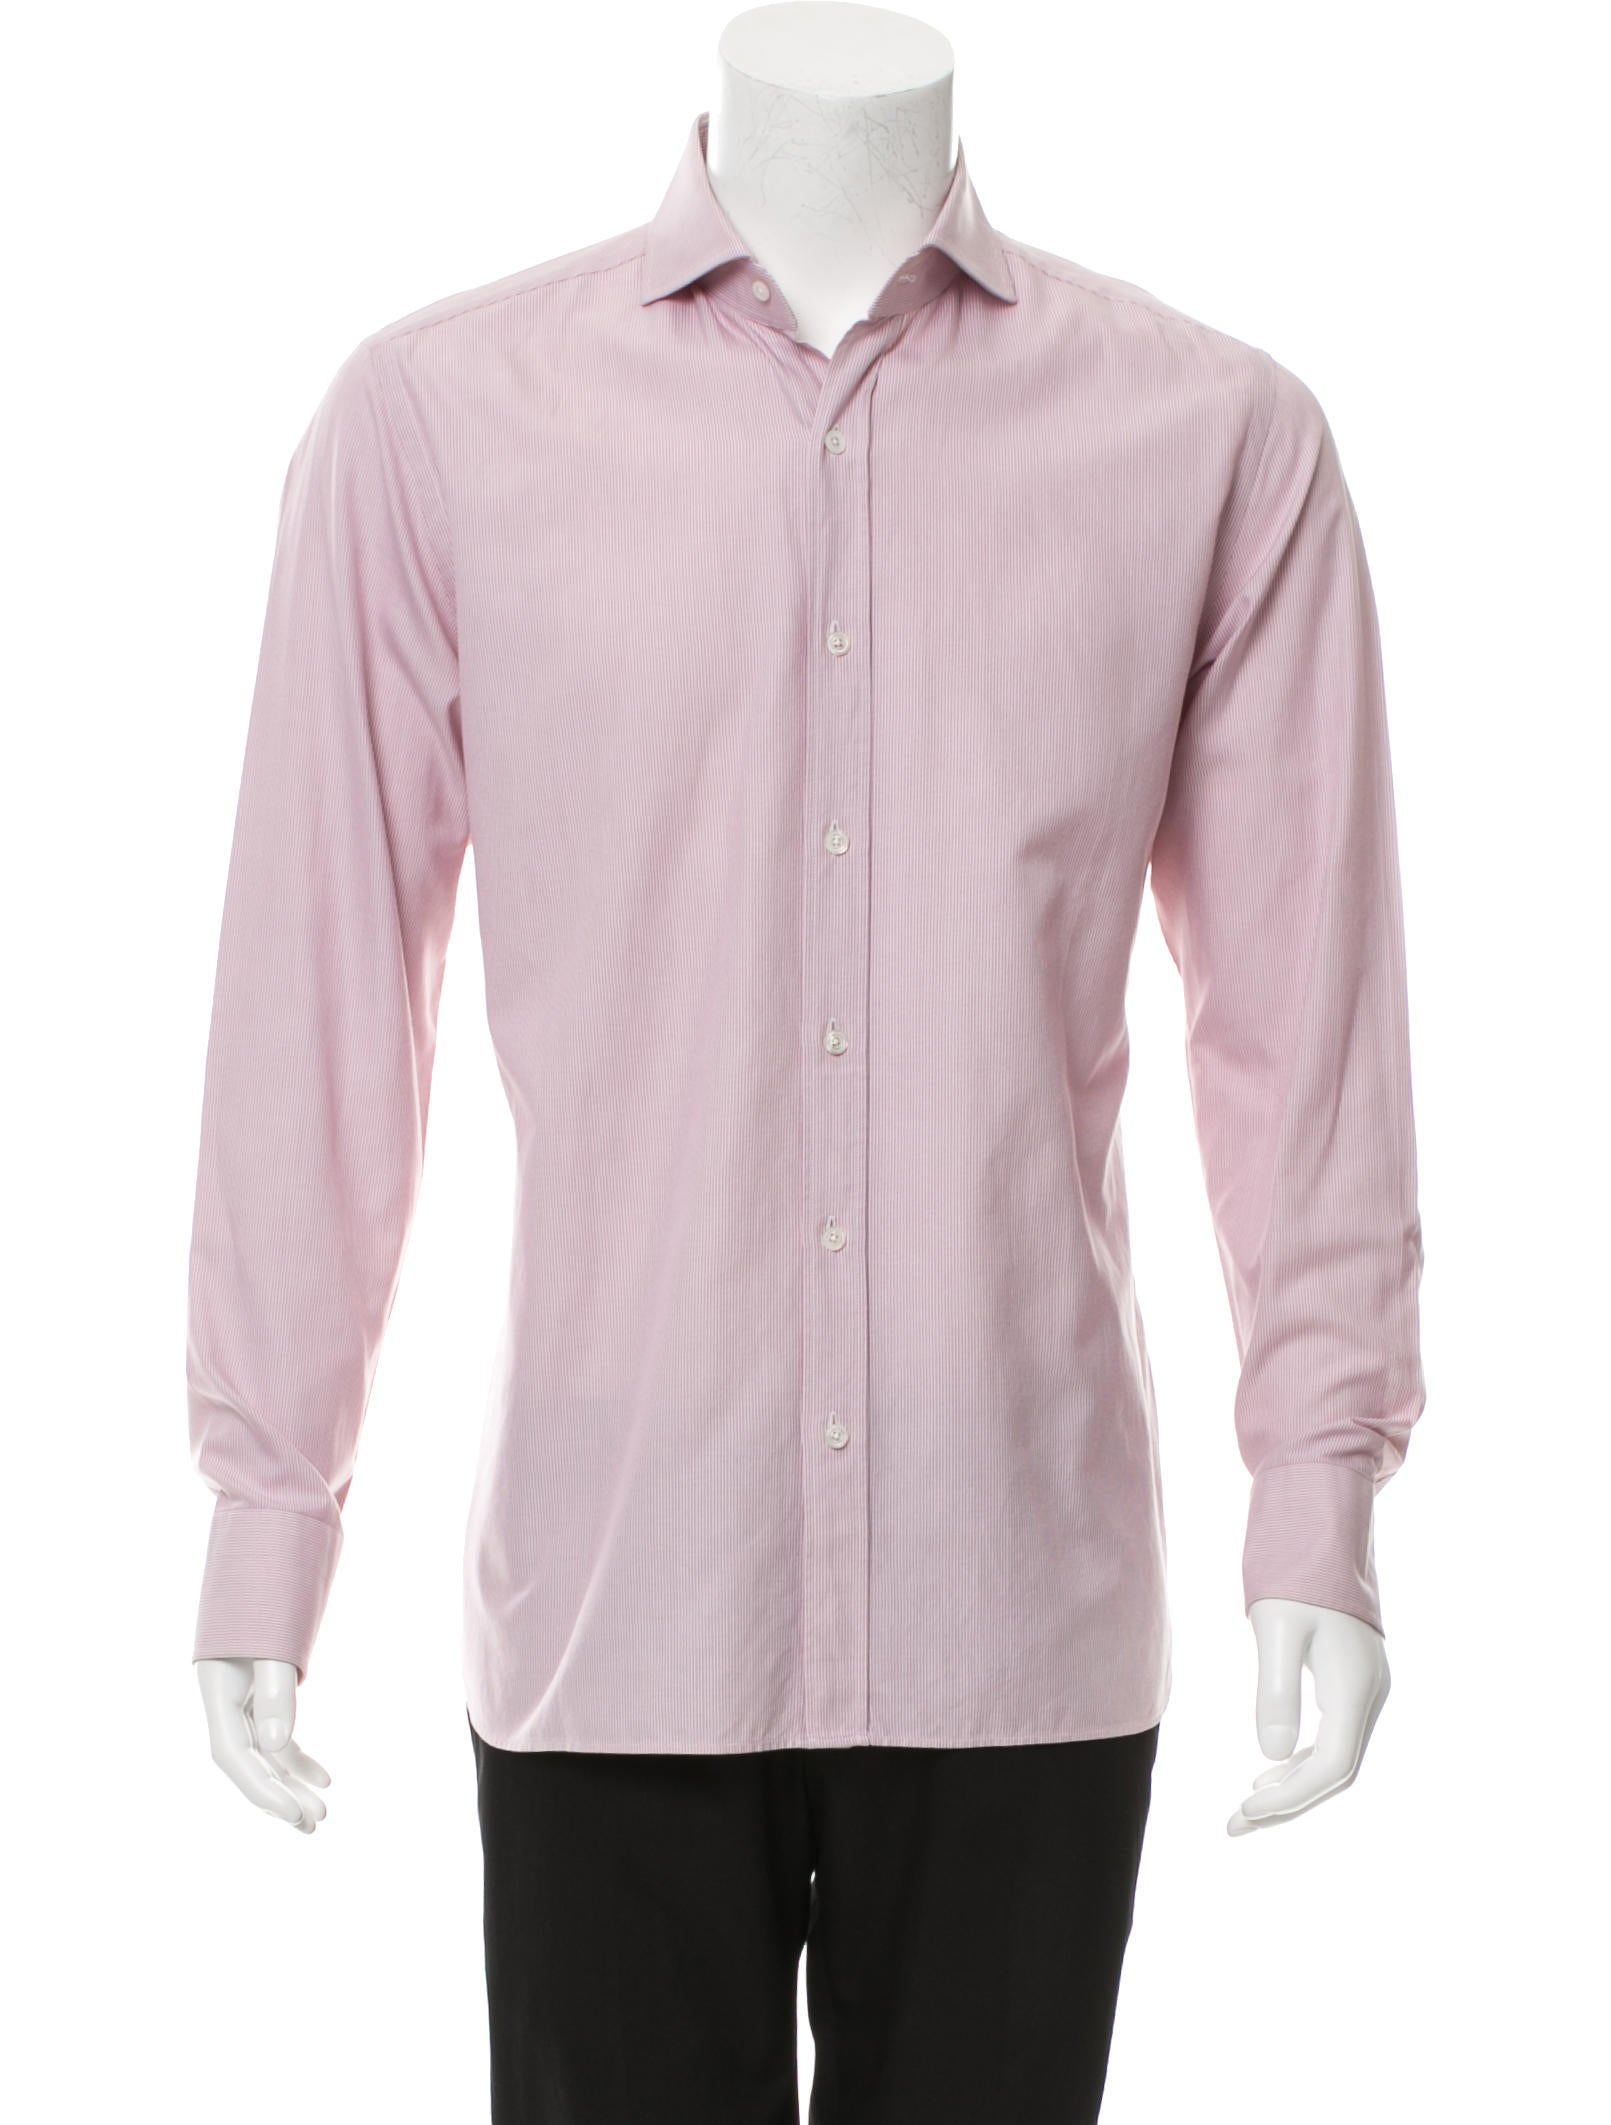 Tom ford striped button up shirt clothing tom36269 for Striped button up shirt mens